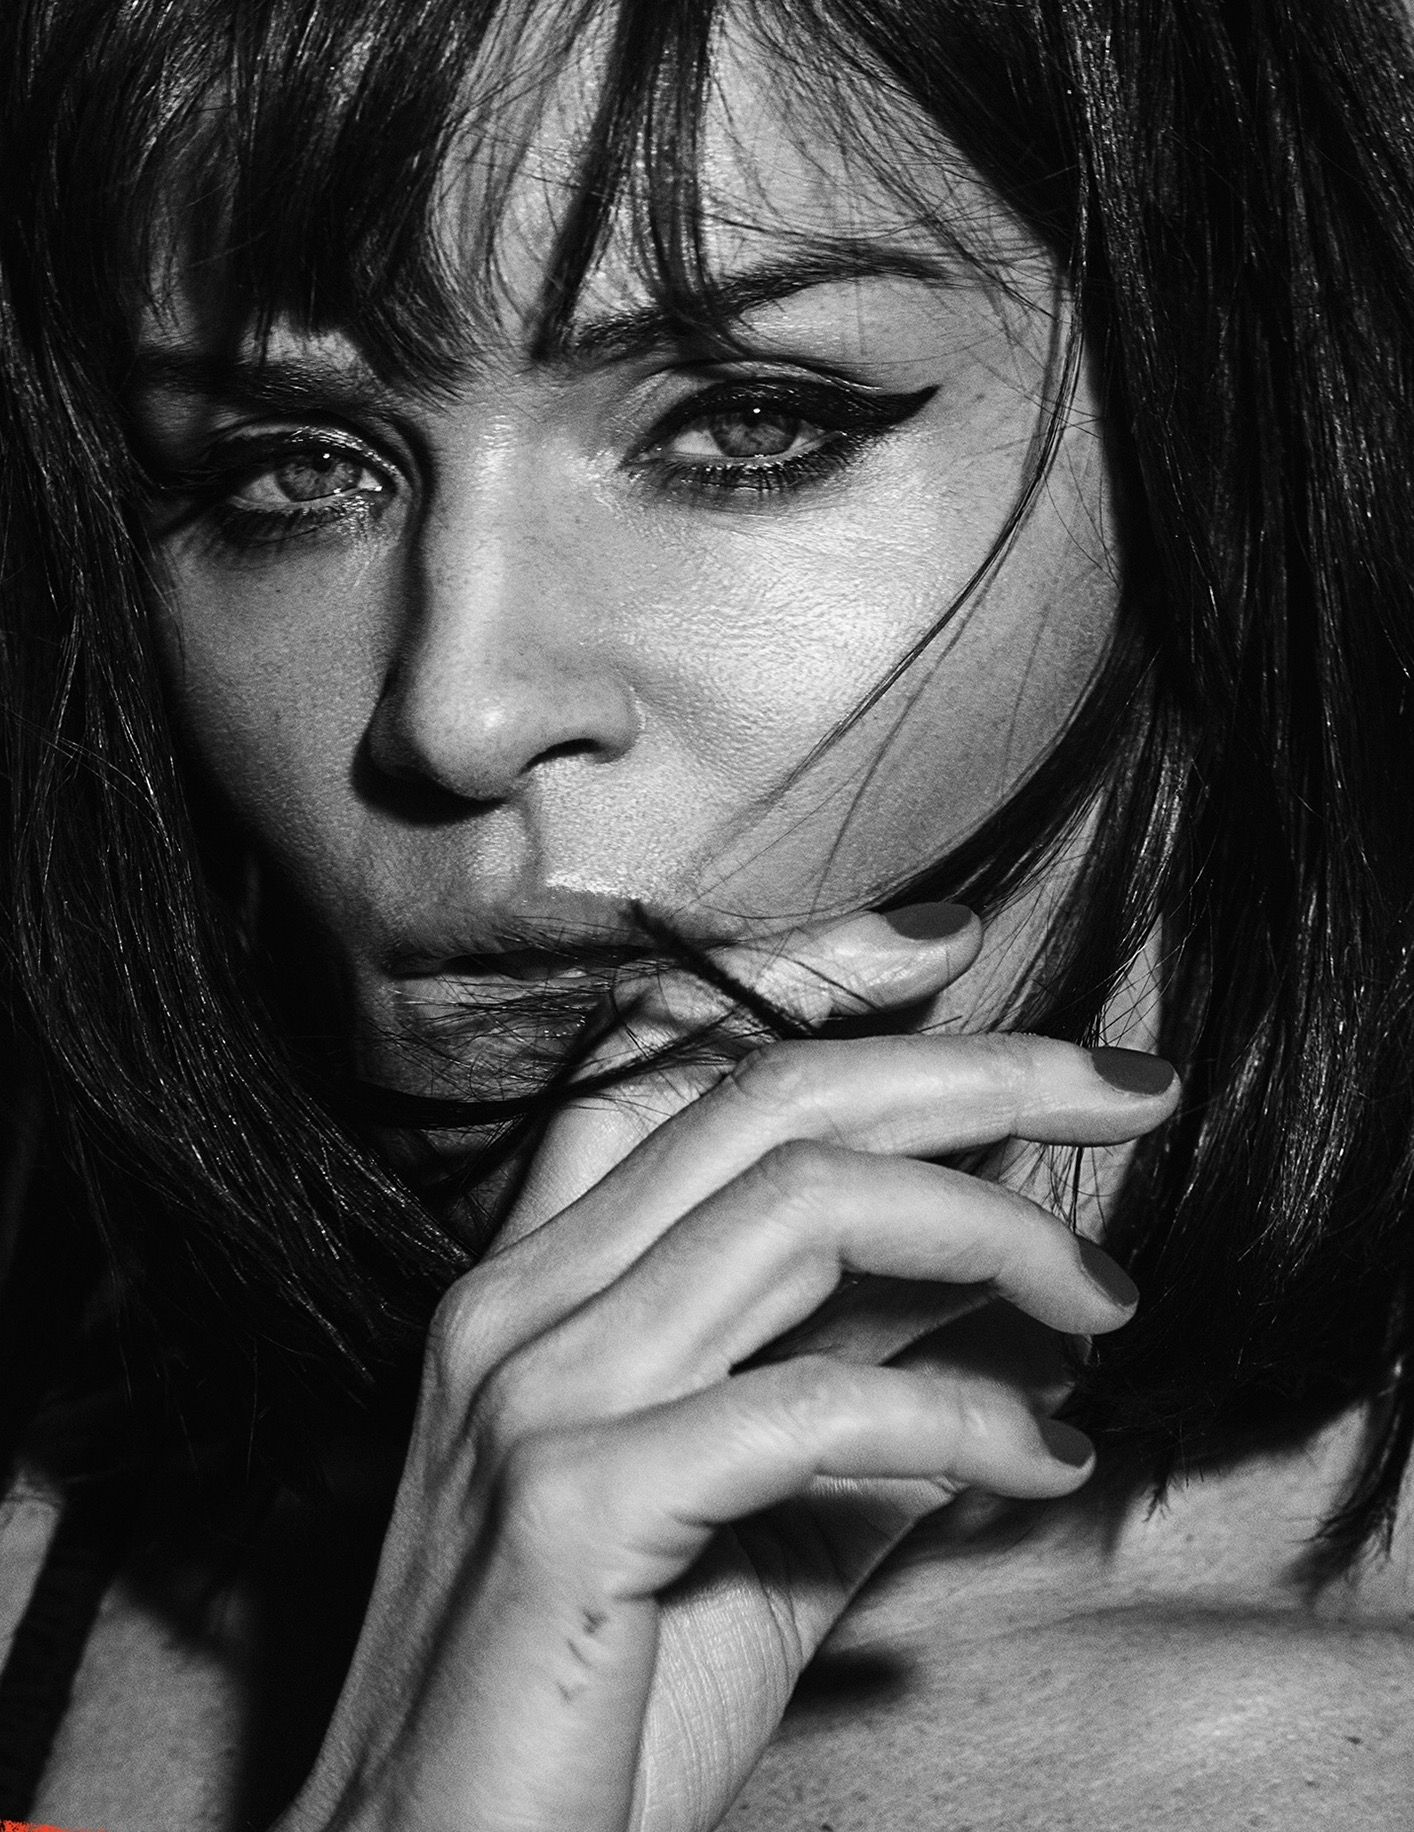 Helena Christensen for SBJCT helena s shootings